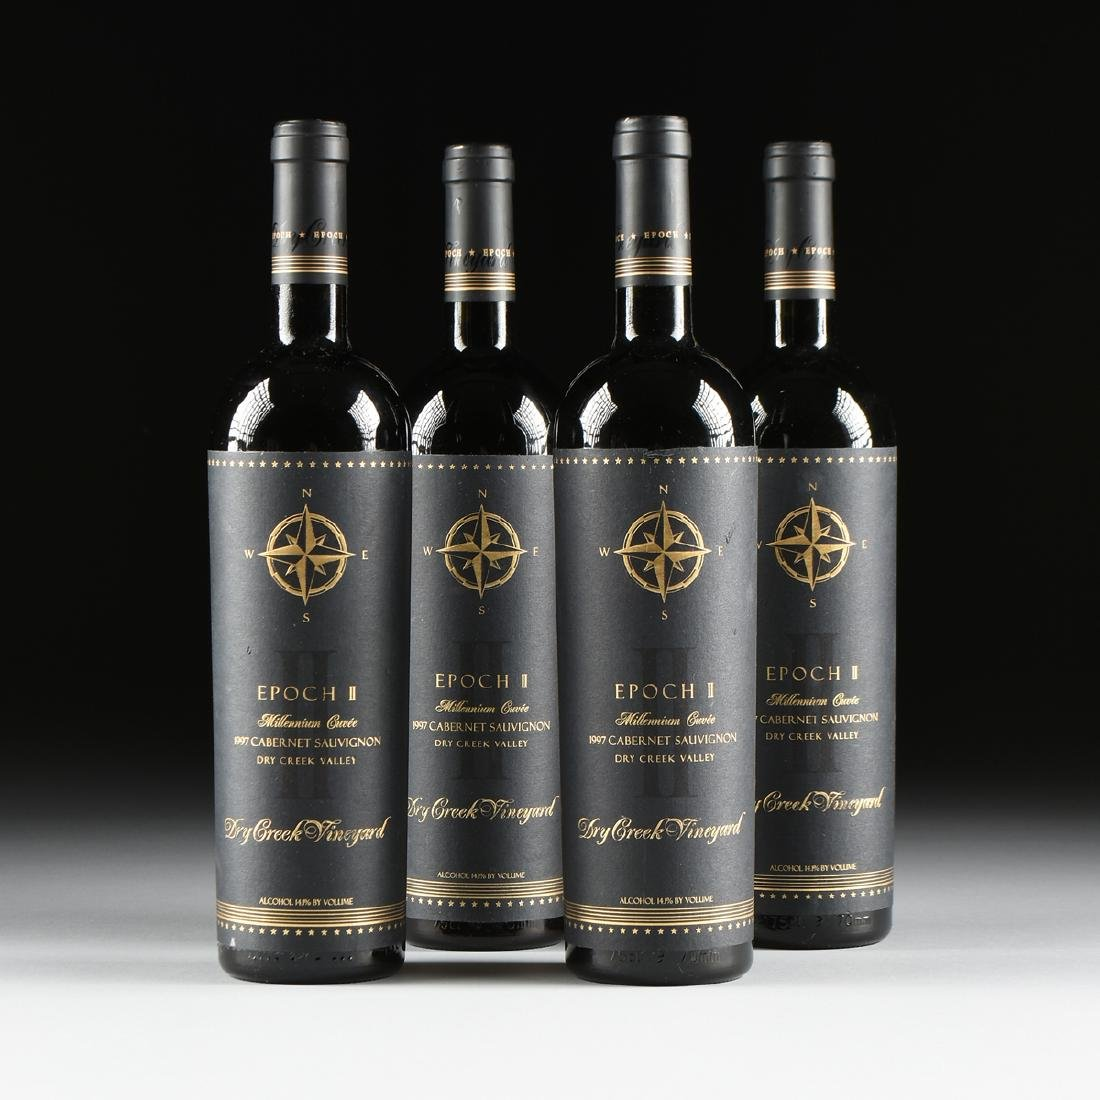 A GROUP OF FOUR BOTTLES OF 1997 EPOCH II MILLENNIUM